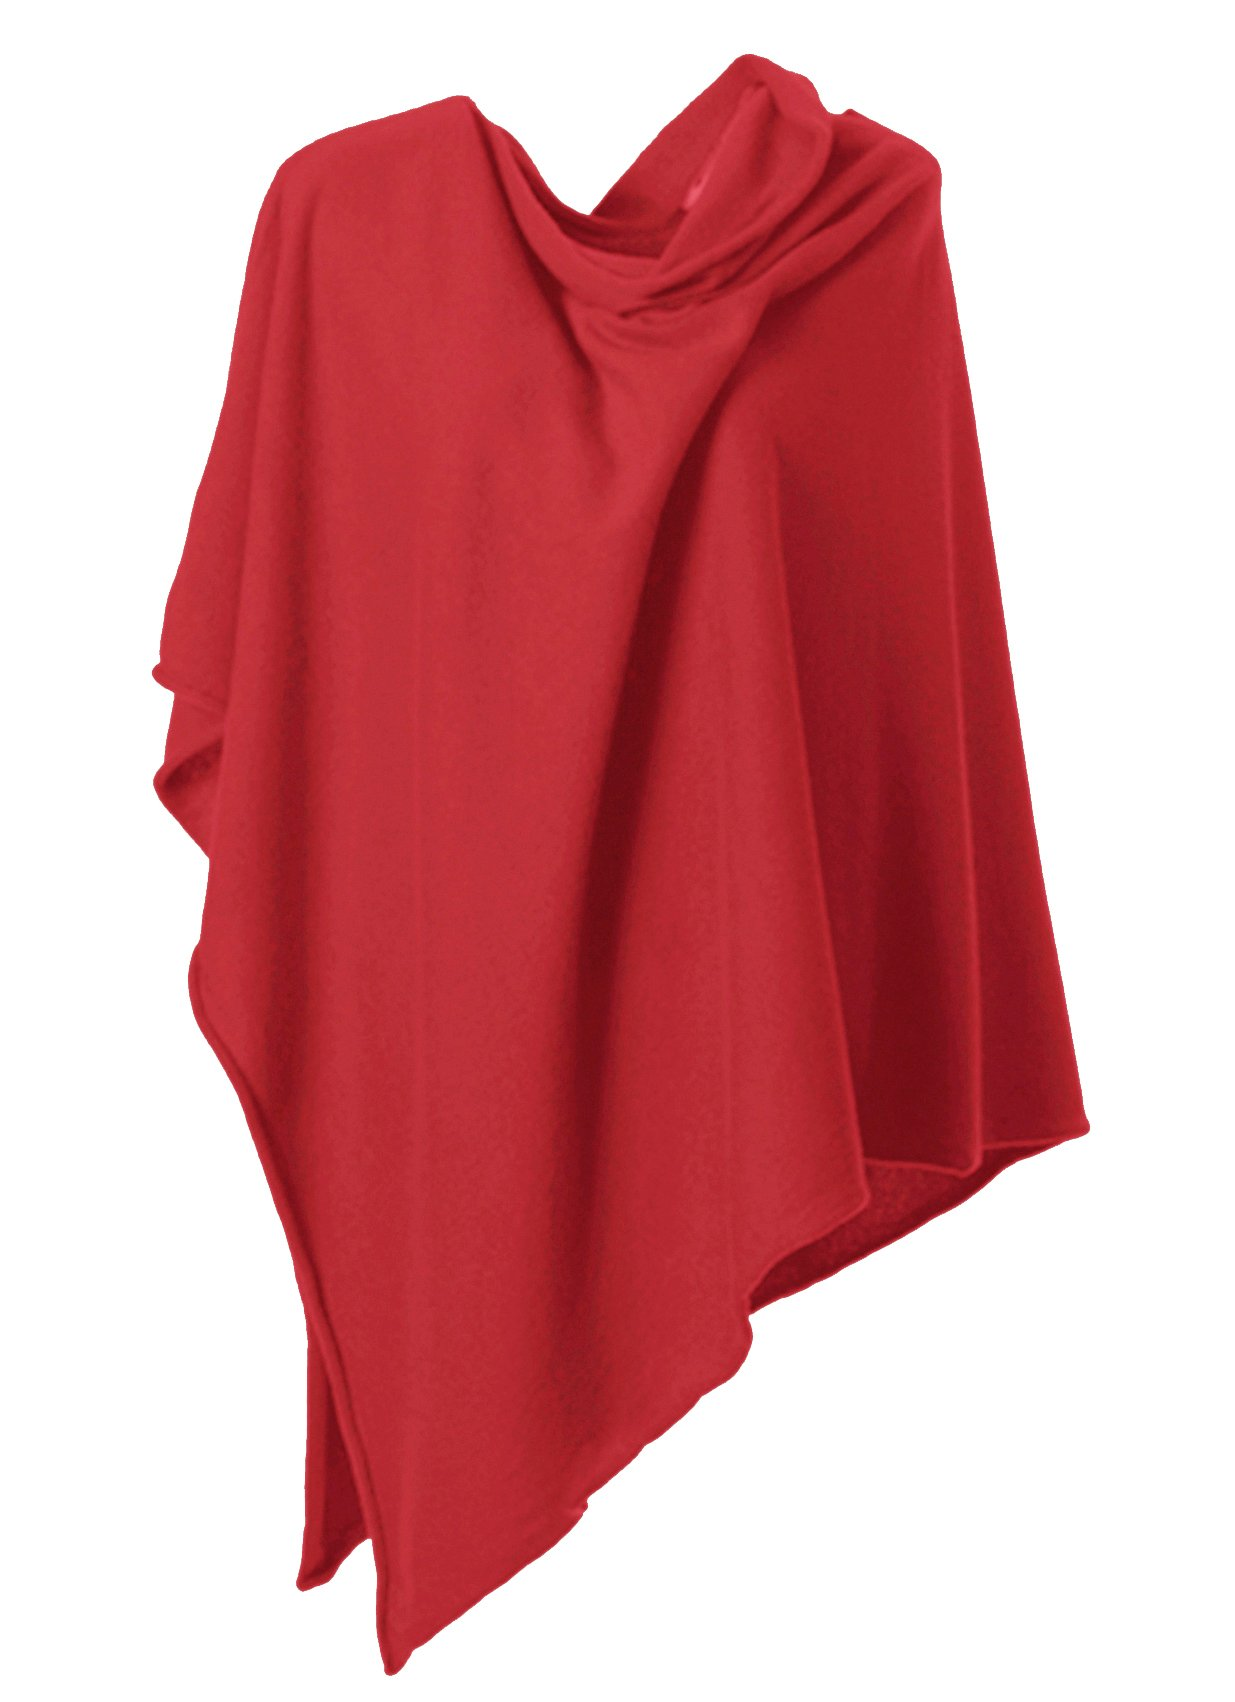 Anna Kristine Asymmetrical 100% Cashmere Draped Poncho Topper - Classic Red by Anna Kristine